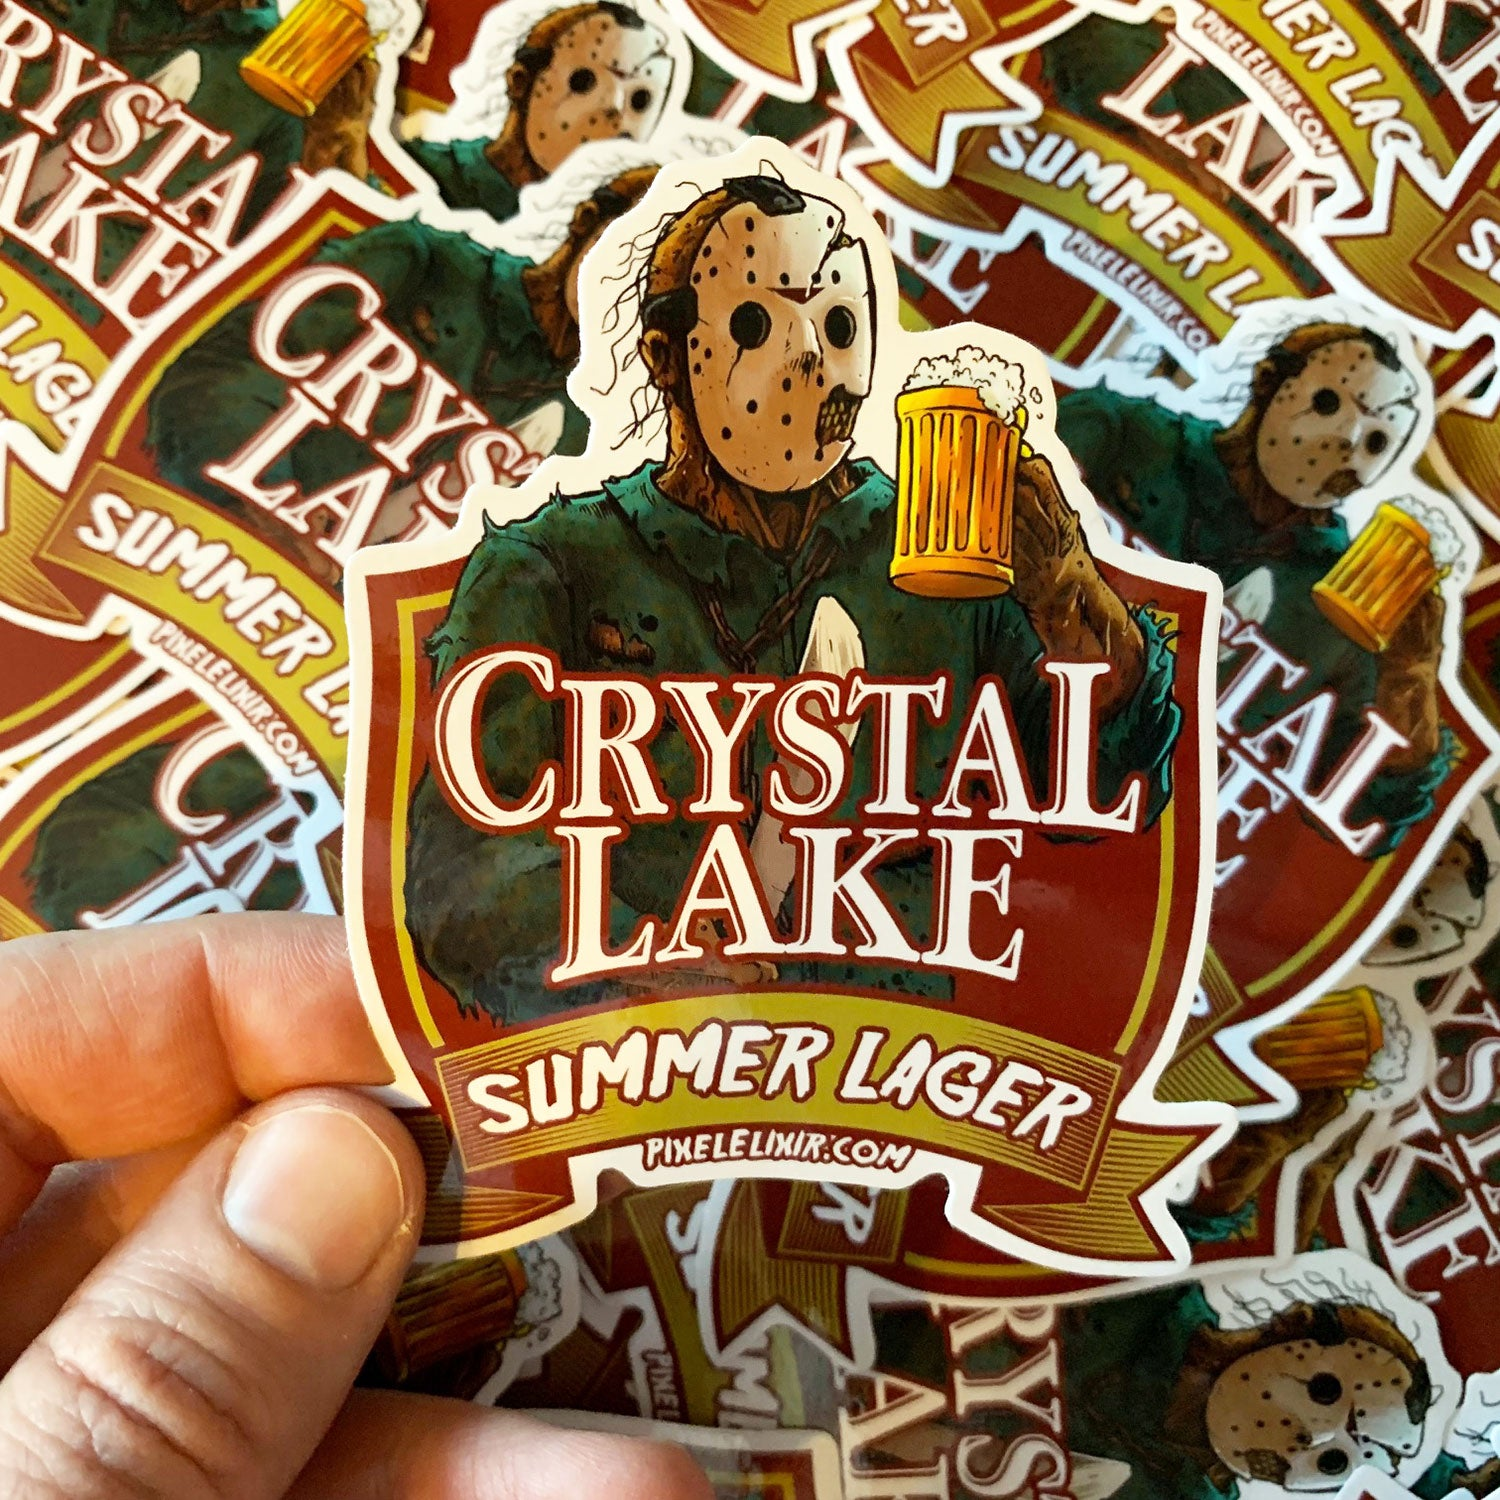 Crystal Lake Summer Lager Vinyl Sticker - Dystopian Designs